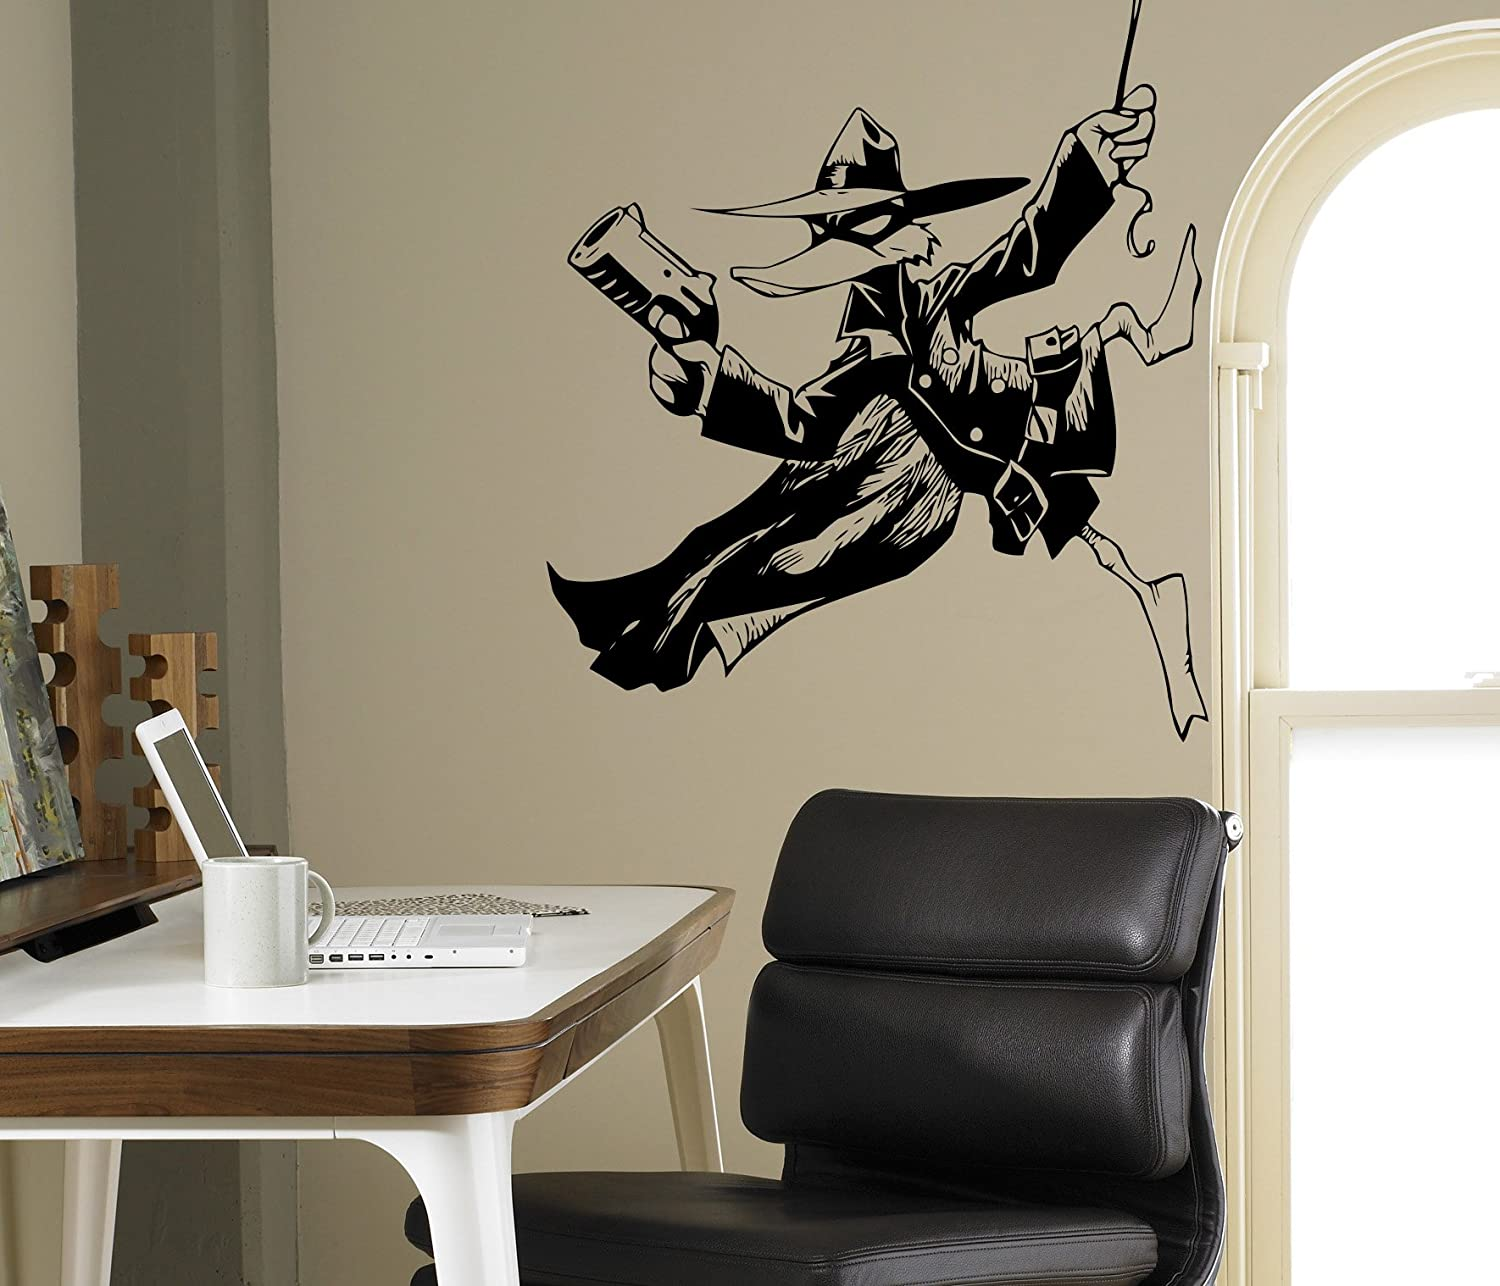 Disney characters wall decal darkwing duck vinyl sticker duck superhero home interior living room window decals housewares design door stickers wall